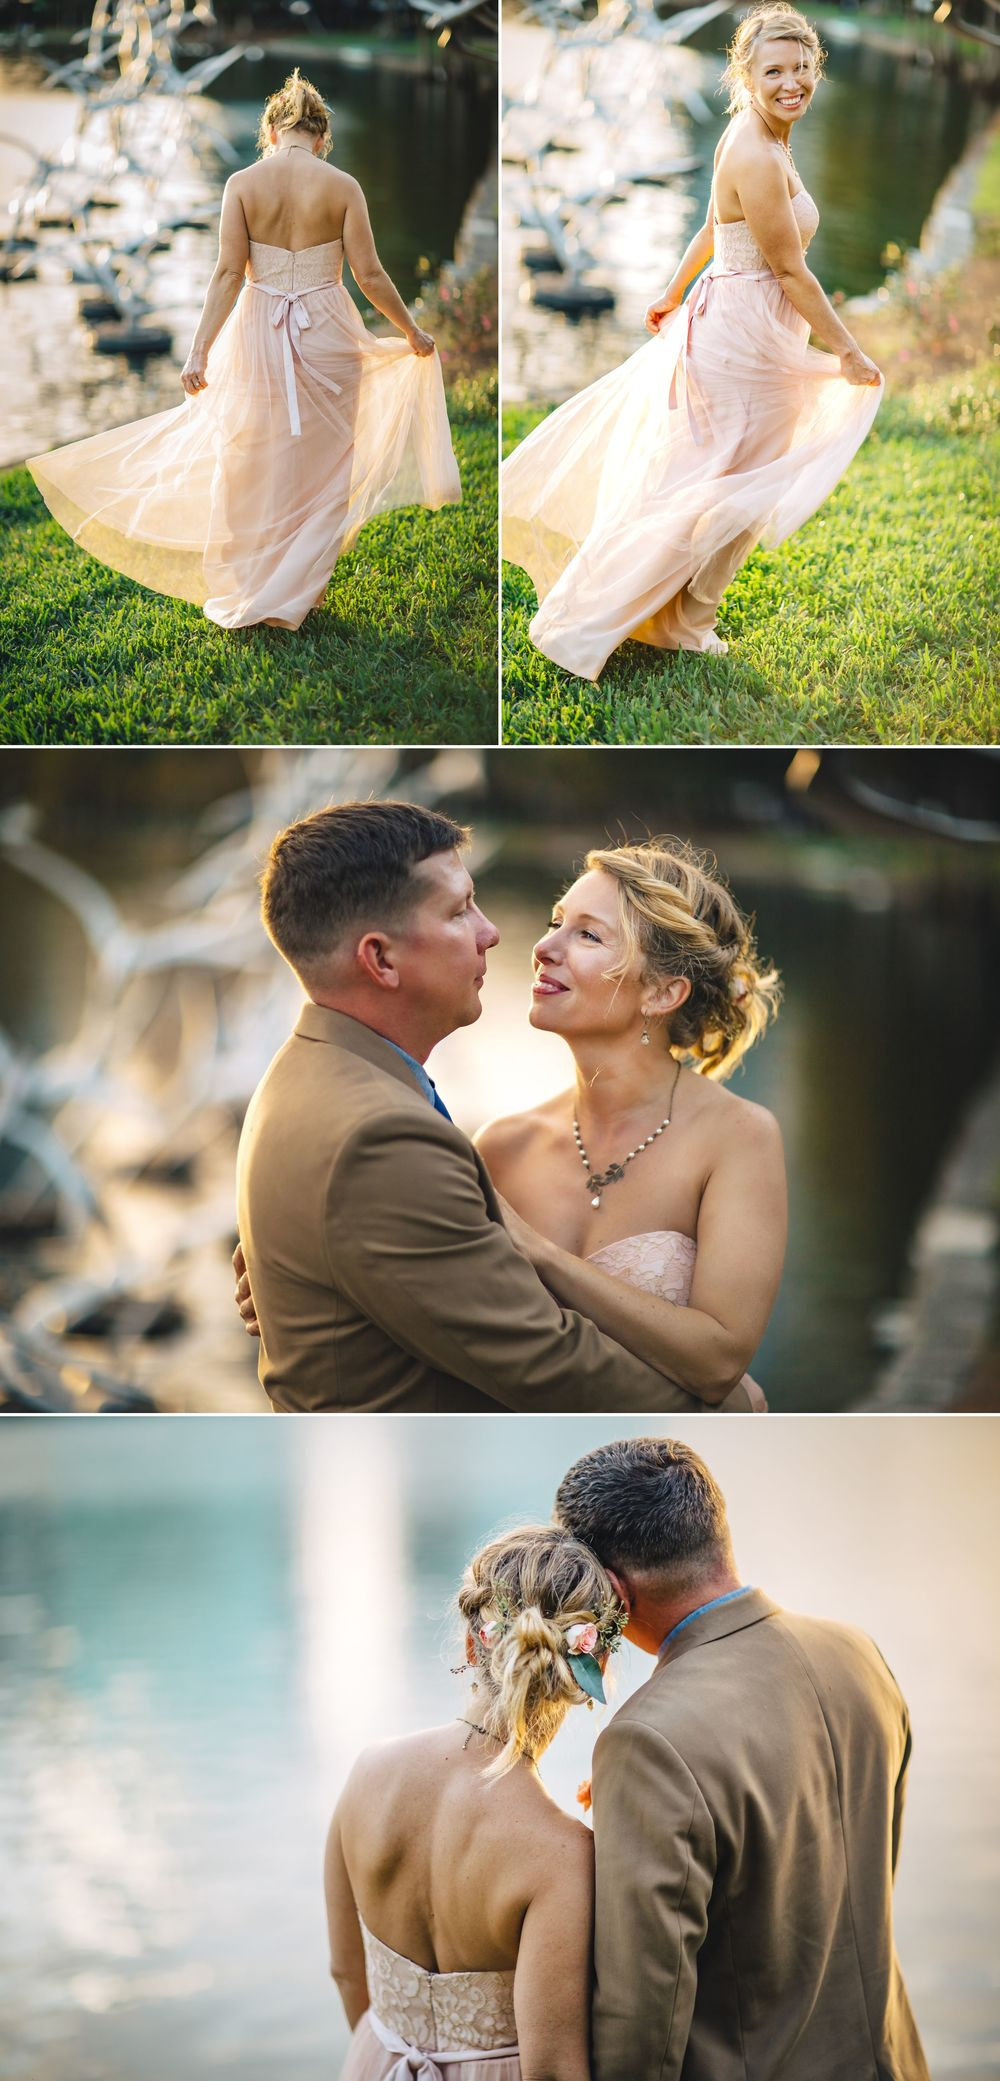 Sunset Romantic Orlando Wedding Photos at Lake Eola in BHLDN Gown.jpg